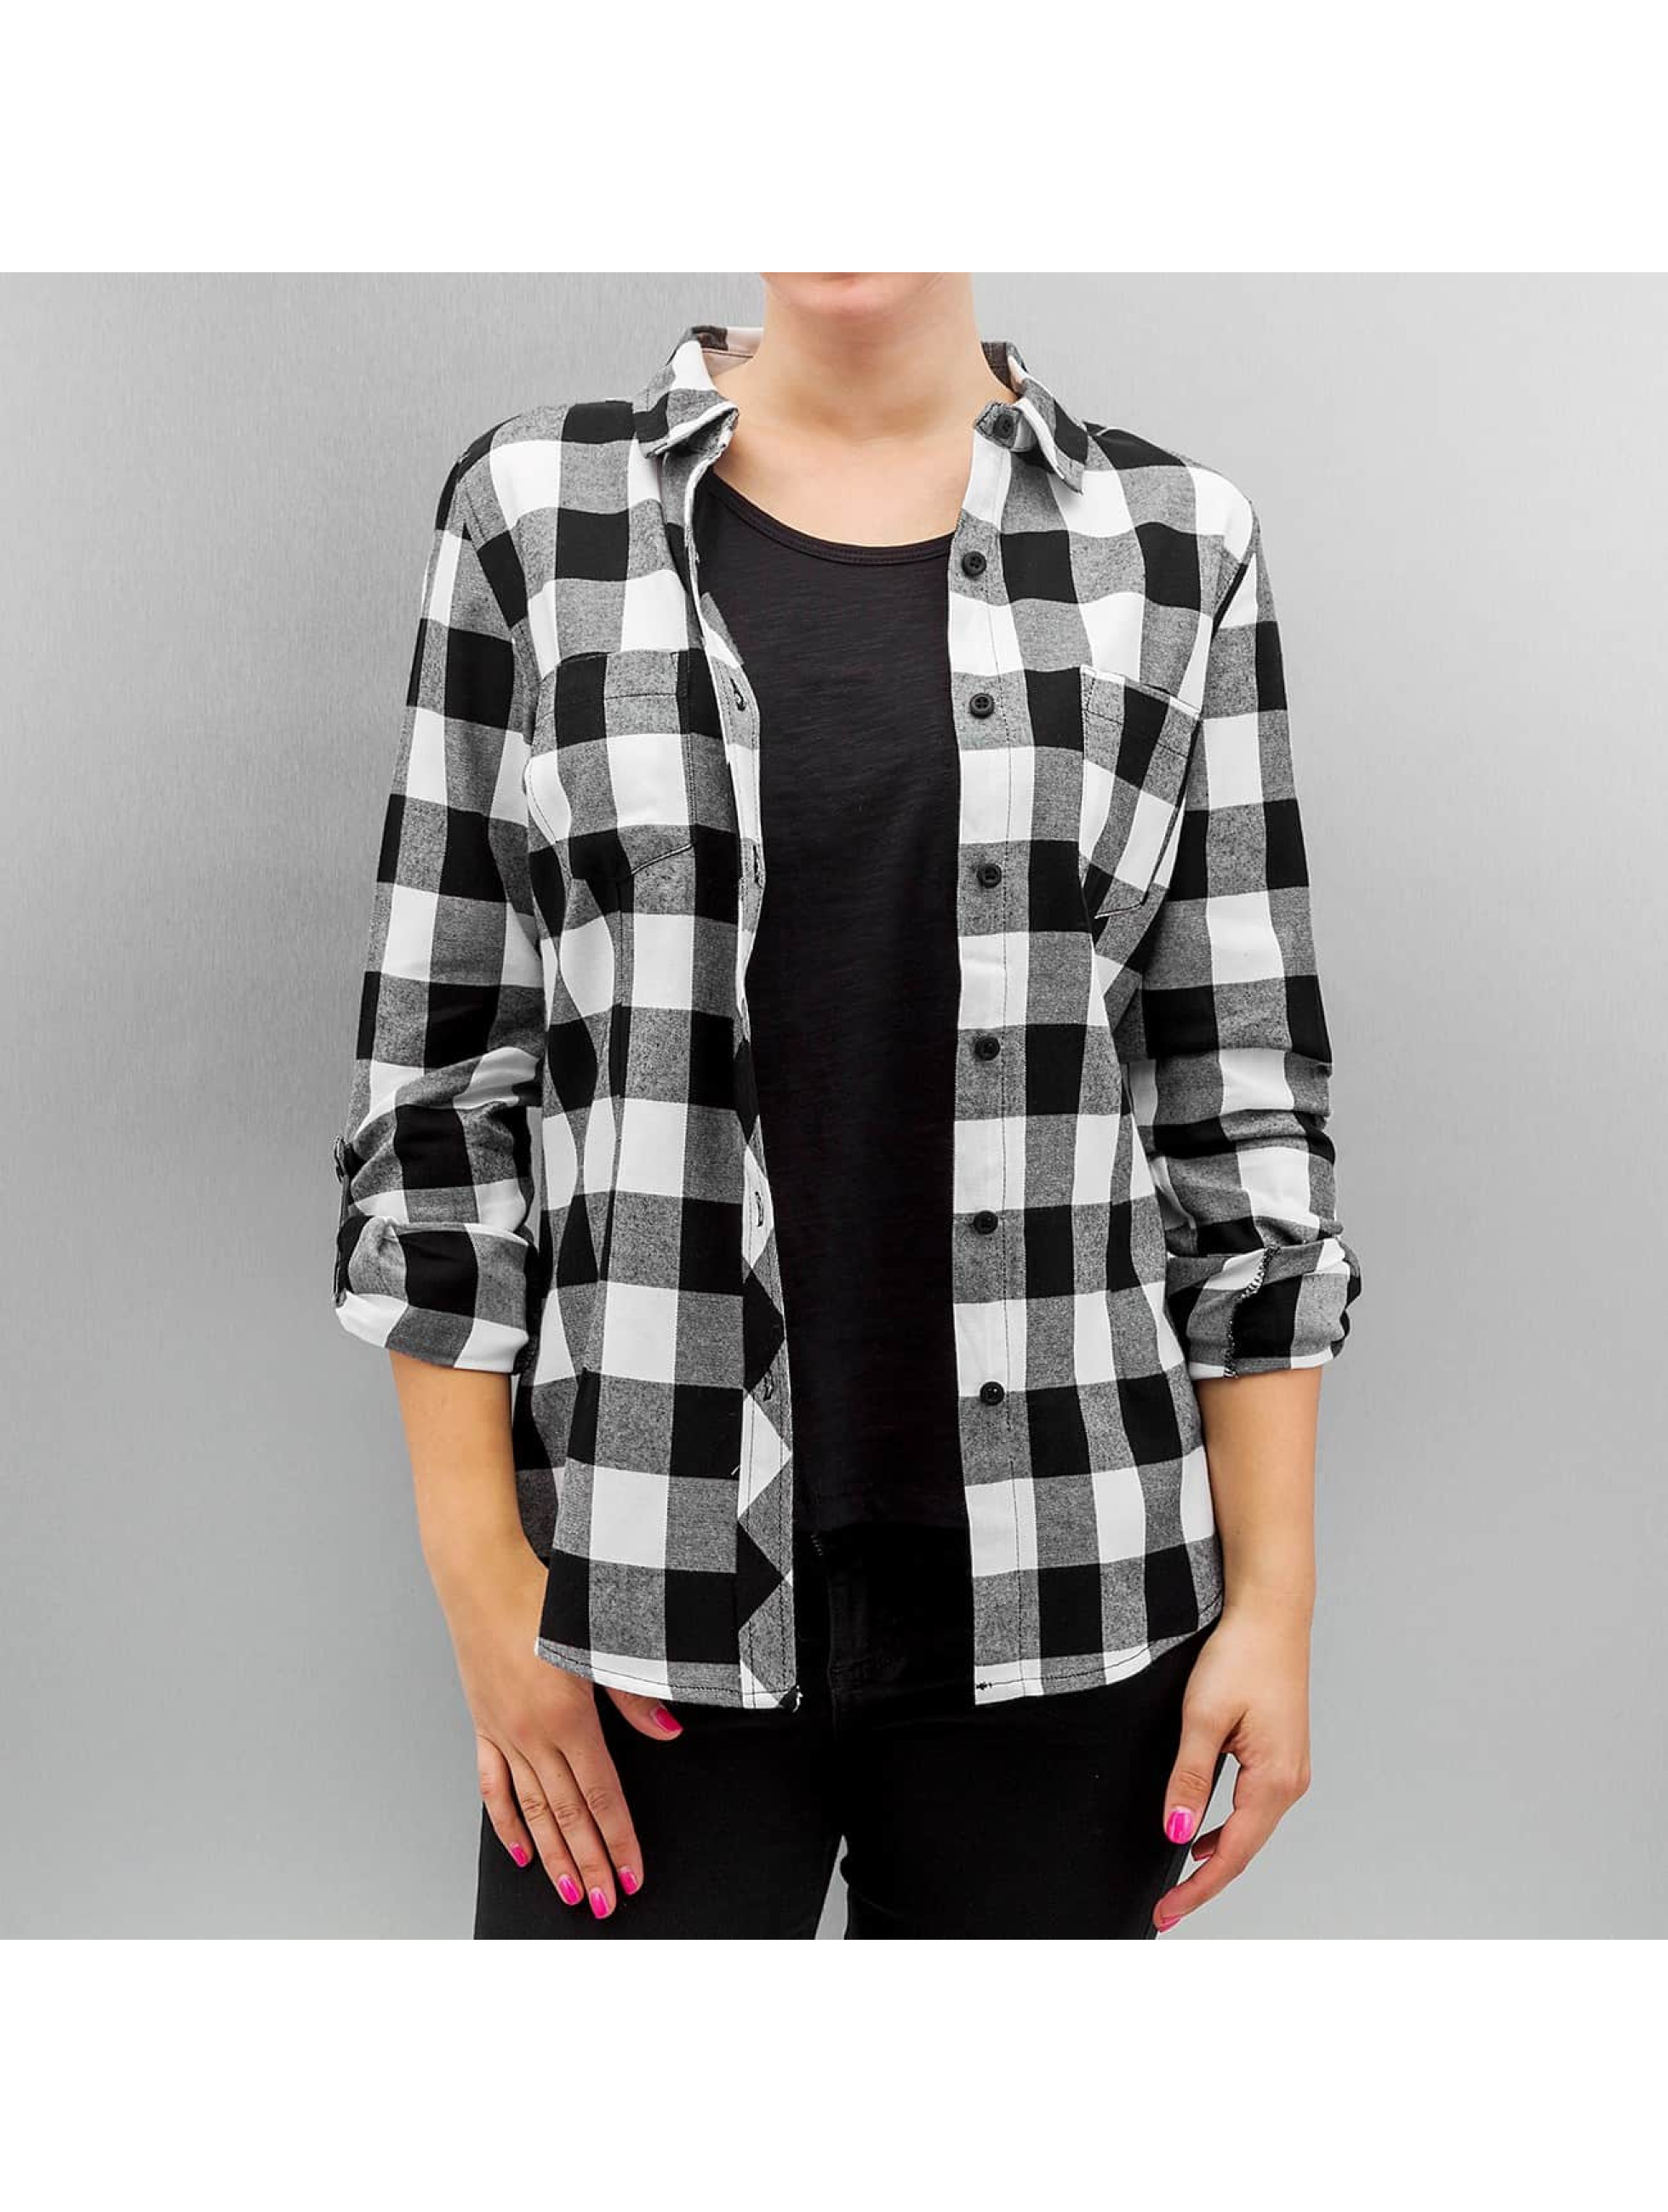 Bluse Ladies Turnup Checked Flanell in schwarz